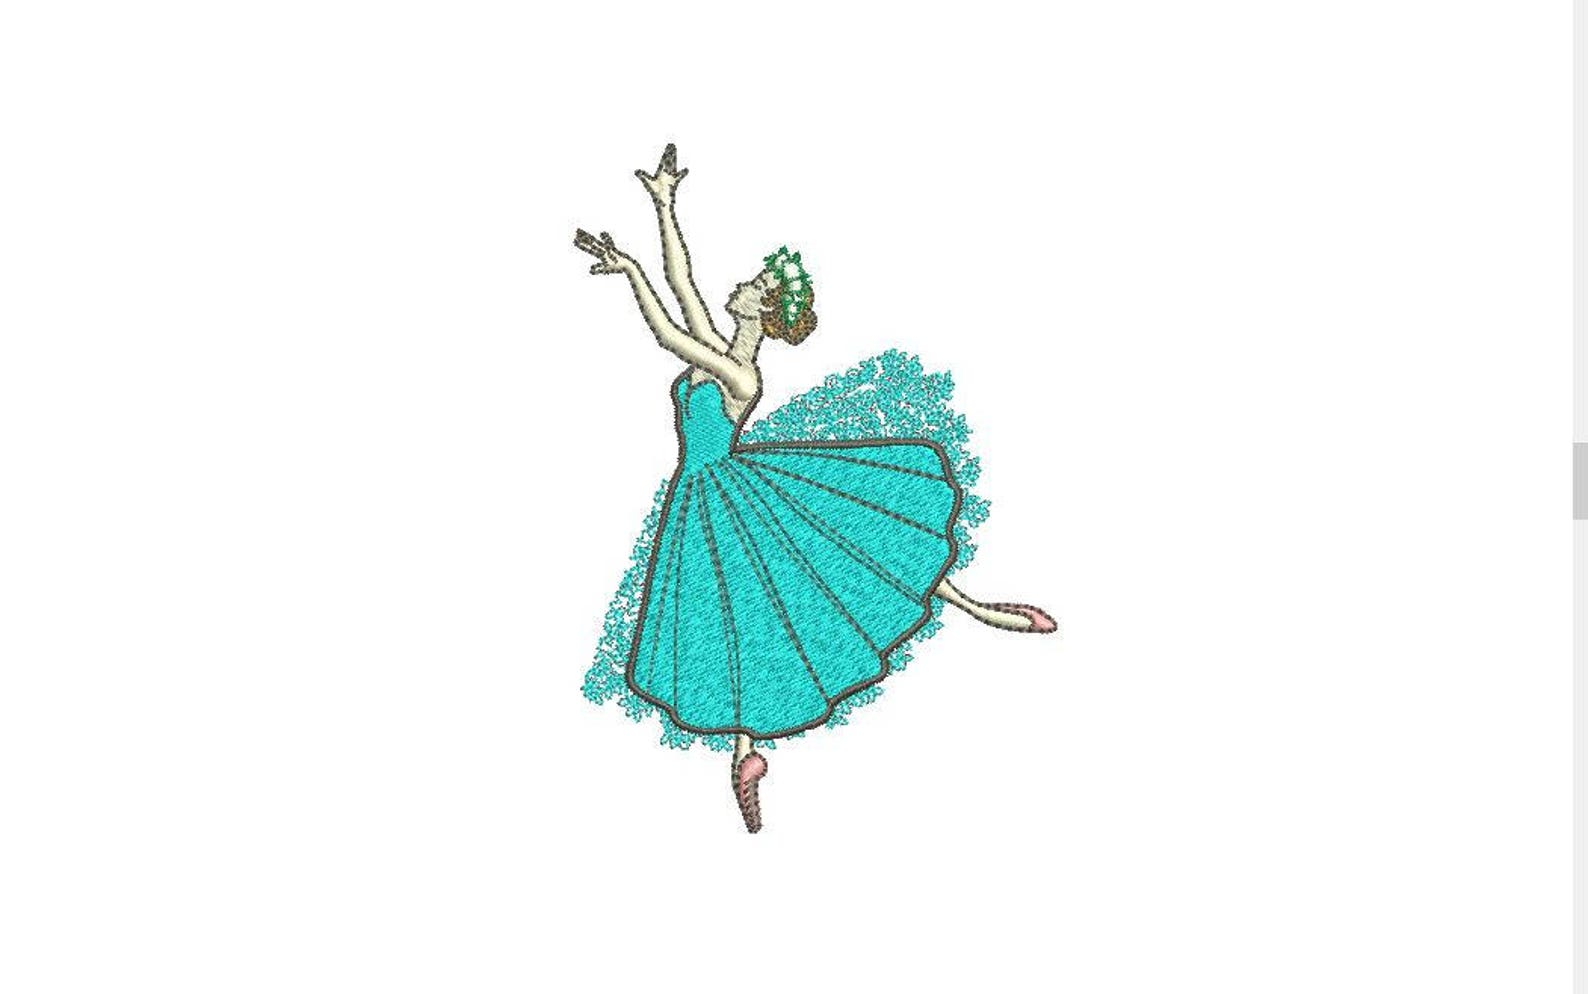 ballerina ballet dancer machine embroidery file design 4x4 hoop